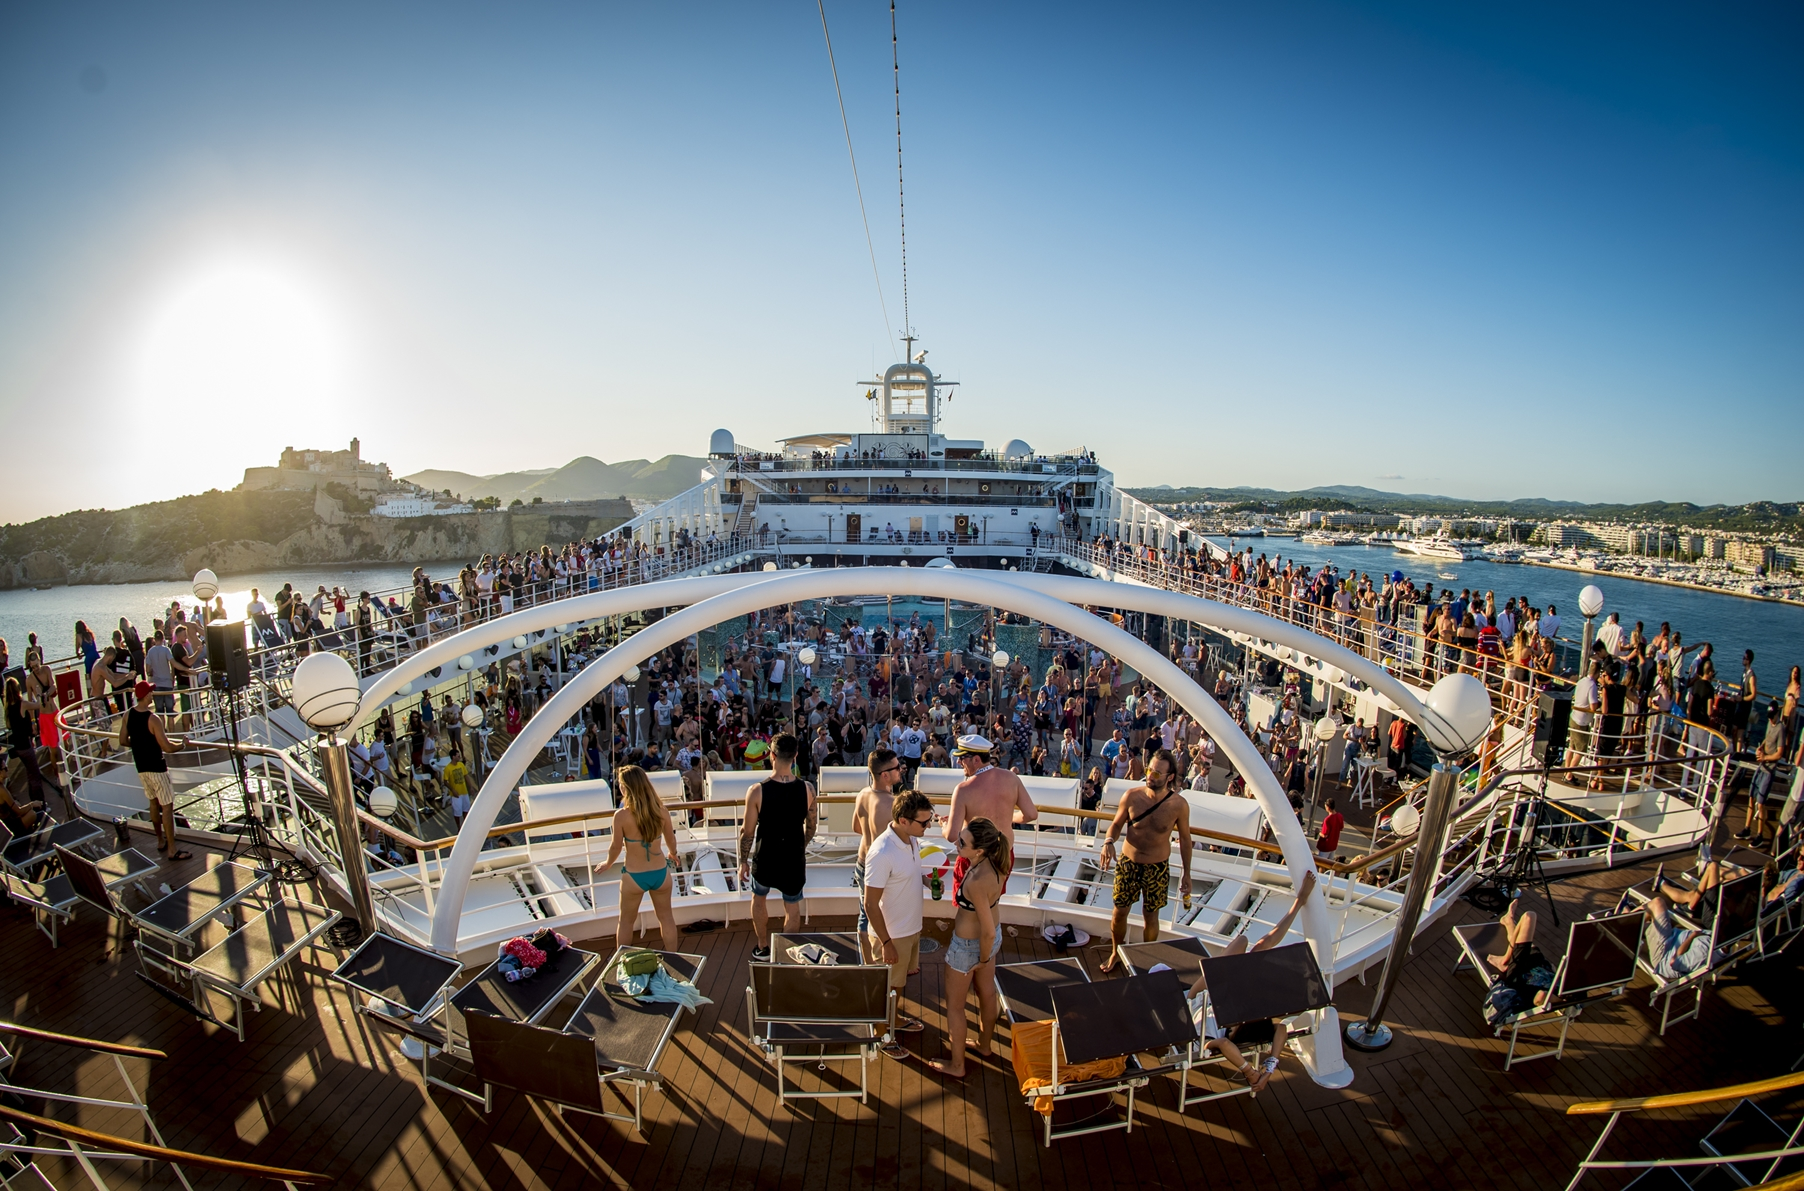 MDRNTY Cruise: 12 insanely amazing photos from the world's wildest party boat